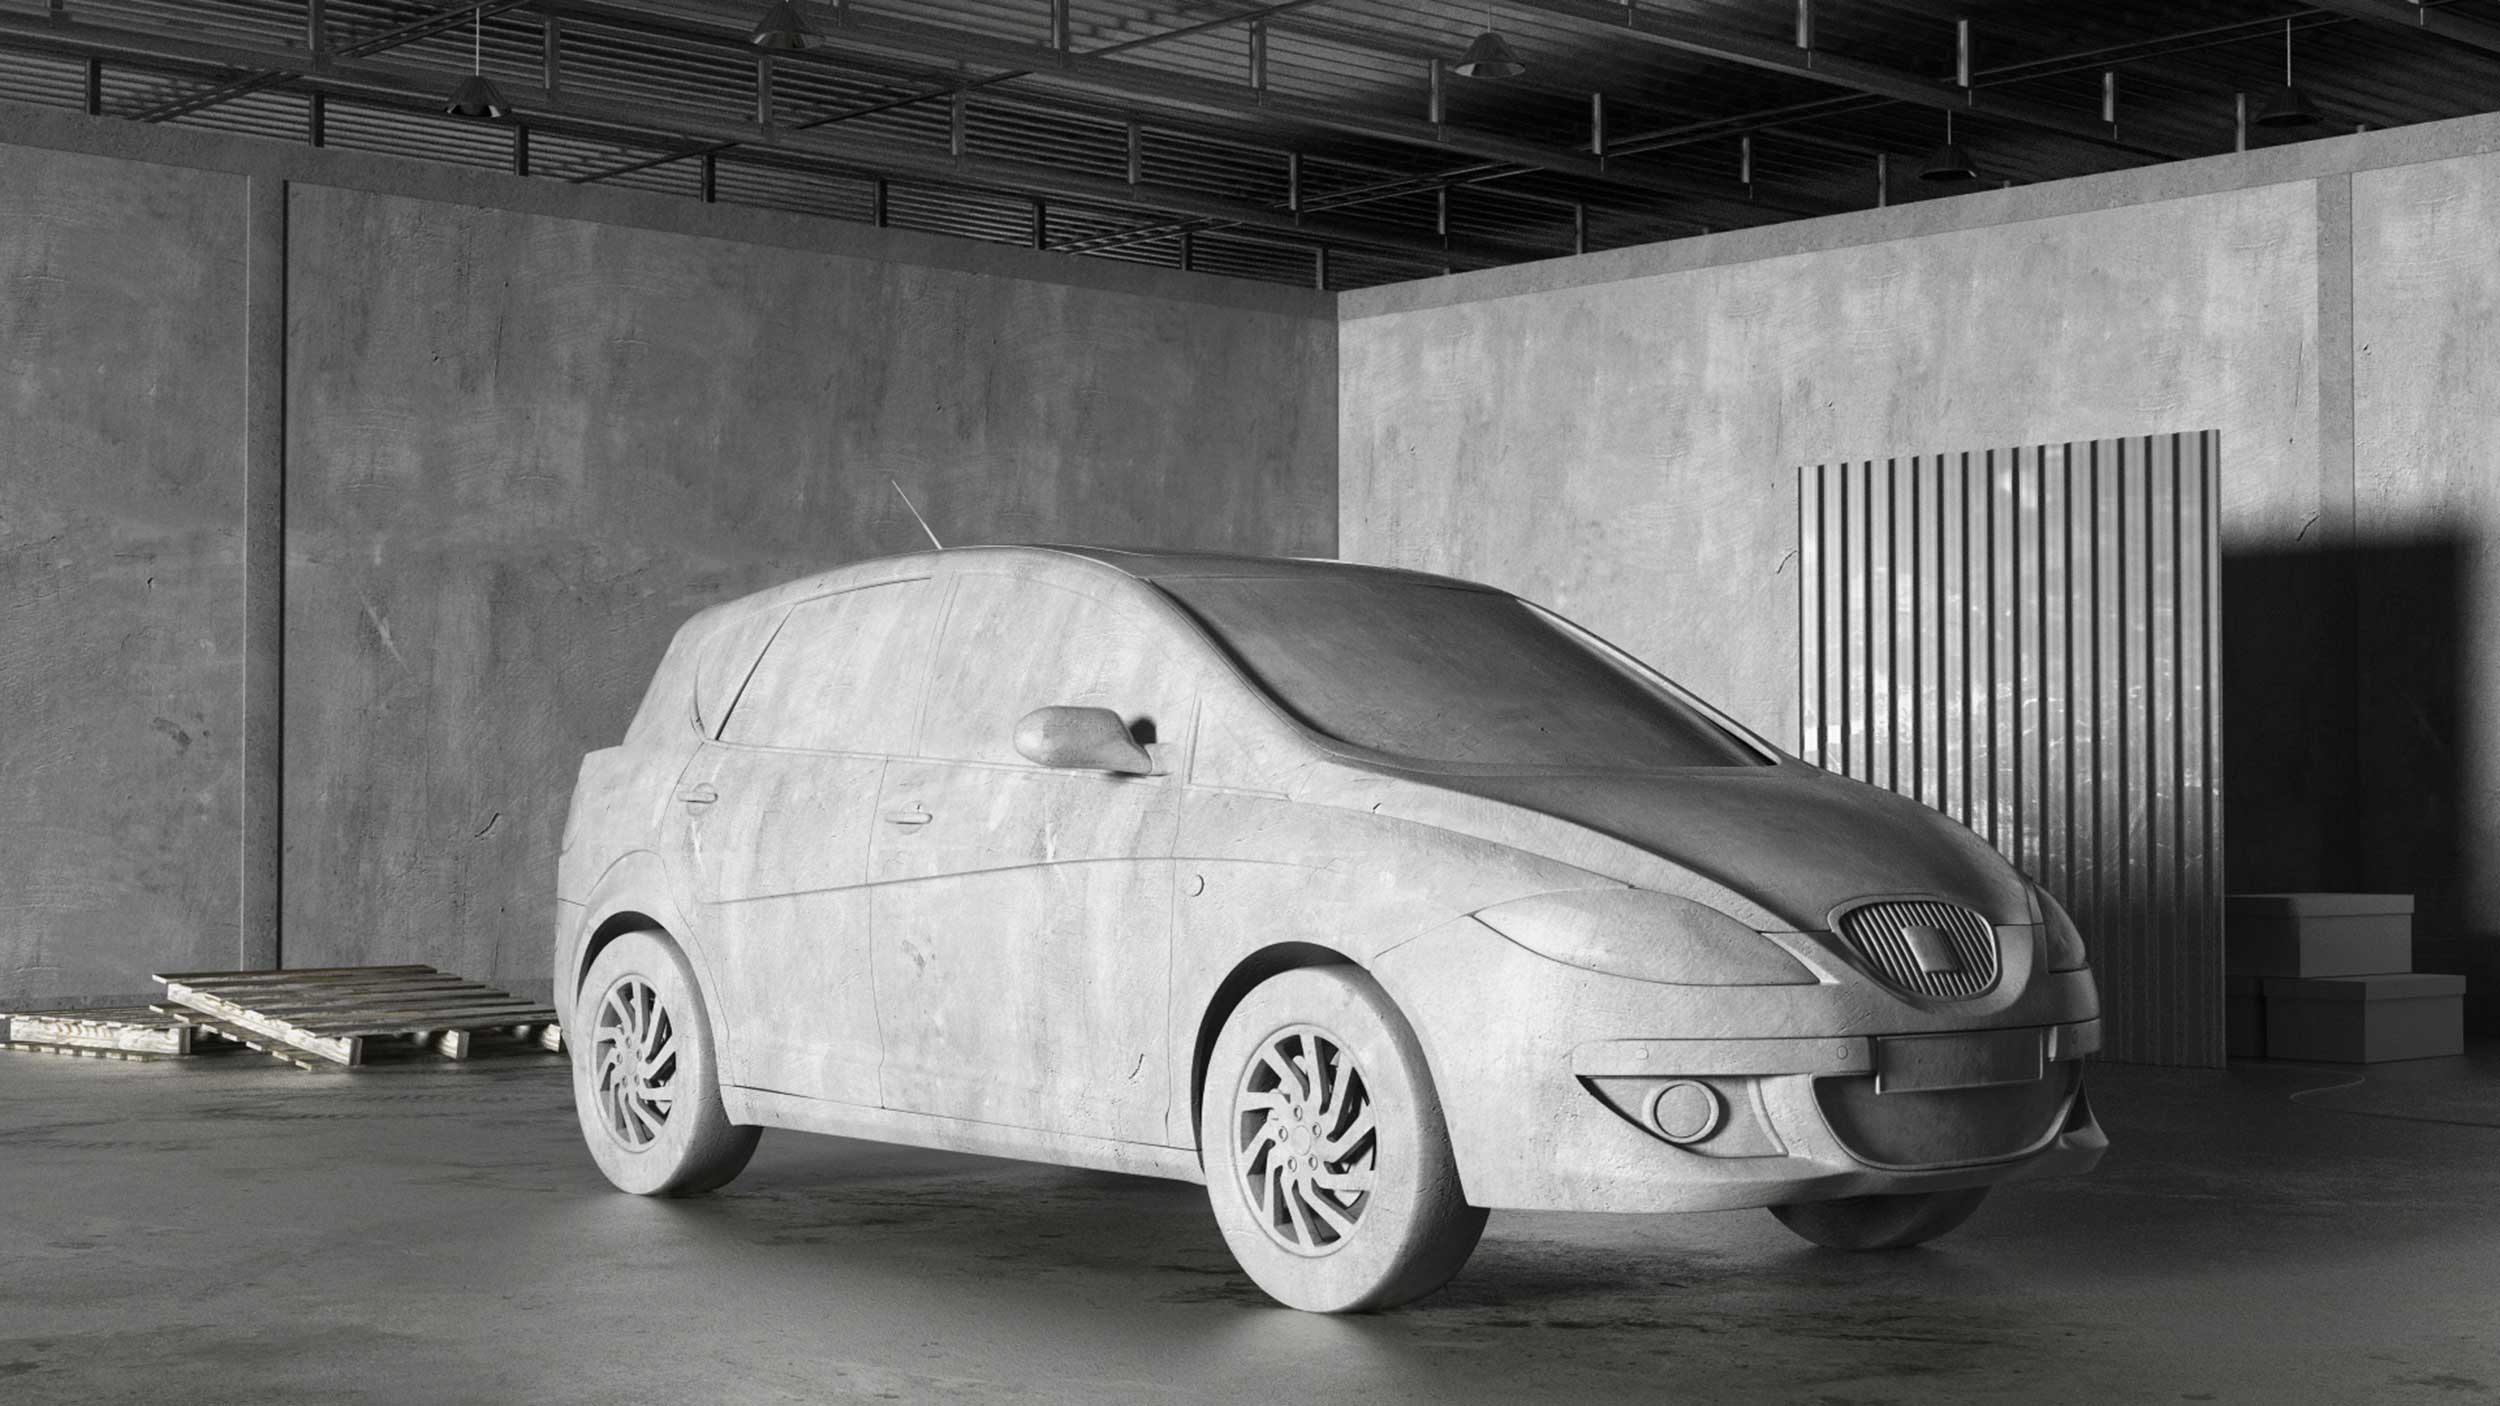 cgi-product-Grayscale-car-in-an-all-gray-room-Nico Castro